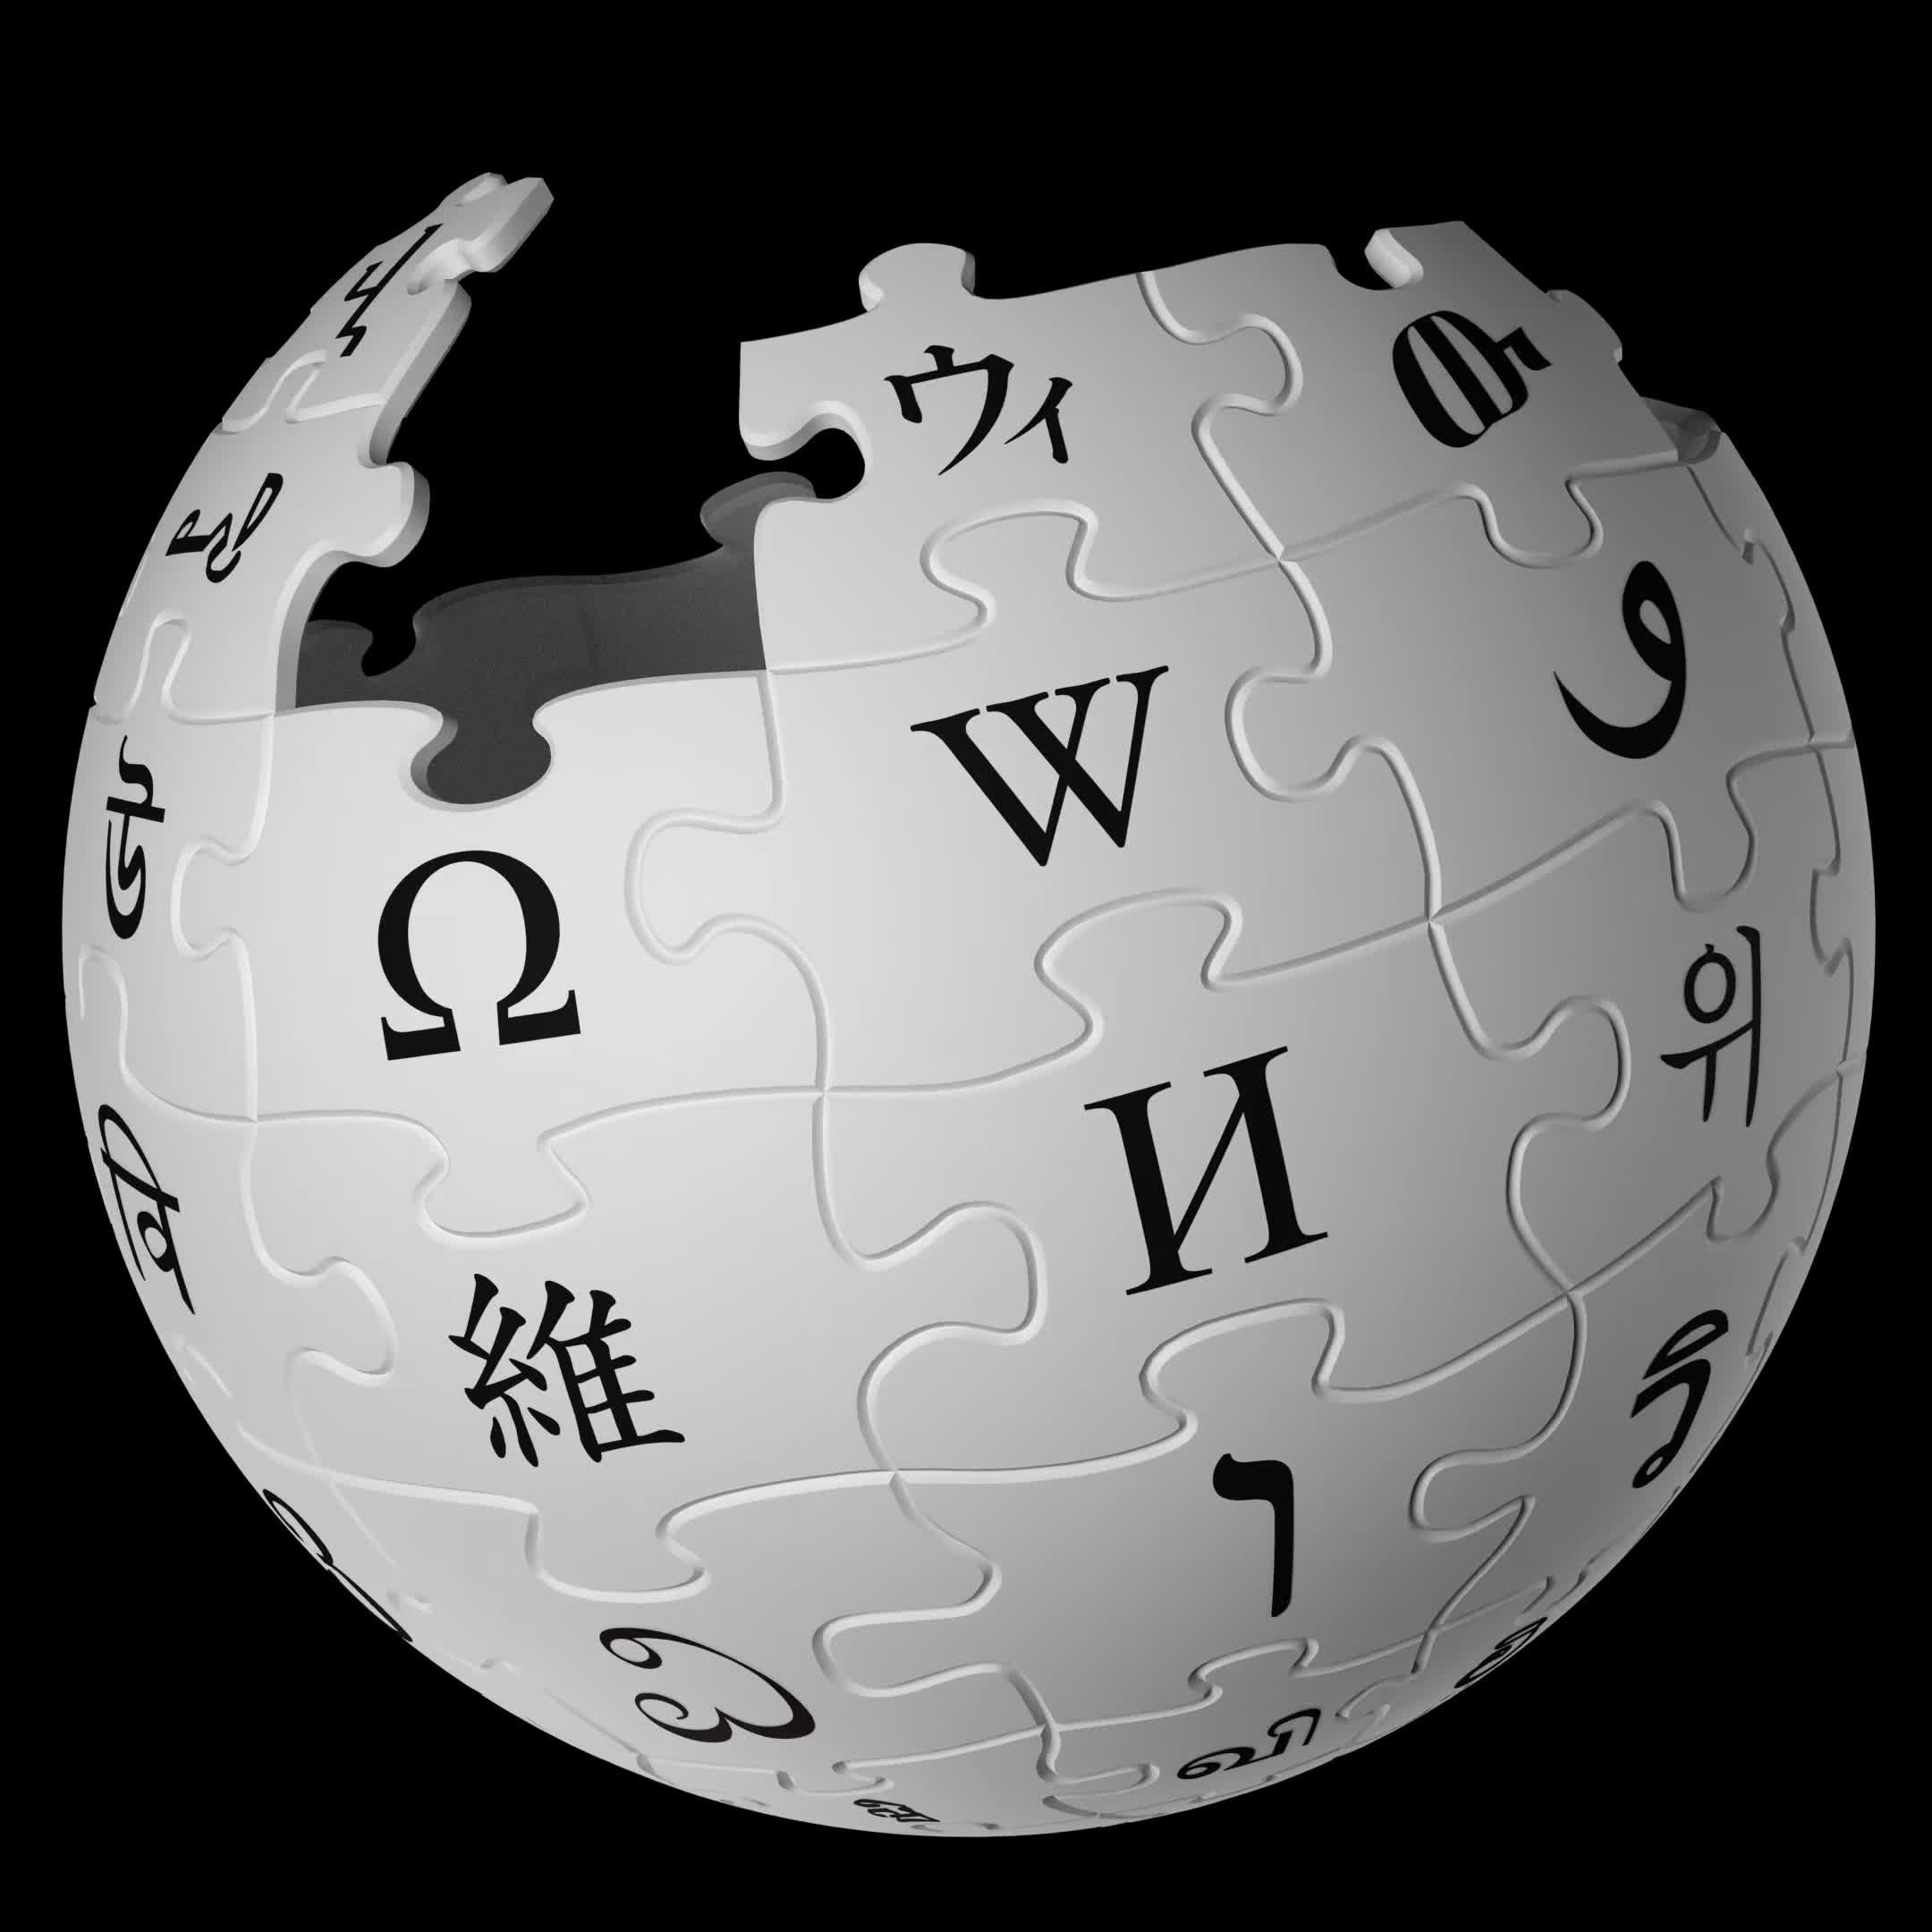 filewikipedia logo puzzle globe spins horizontally and